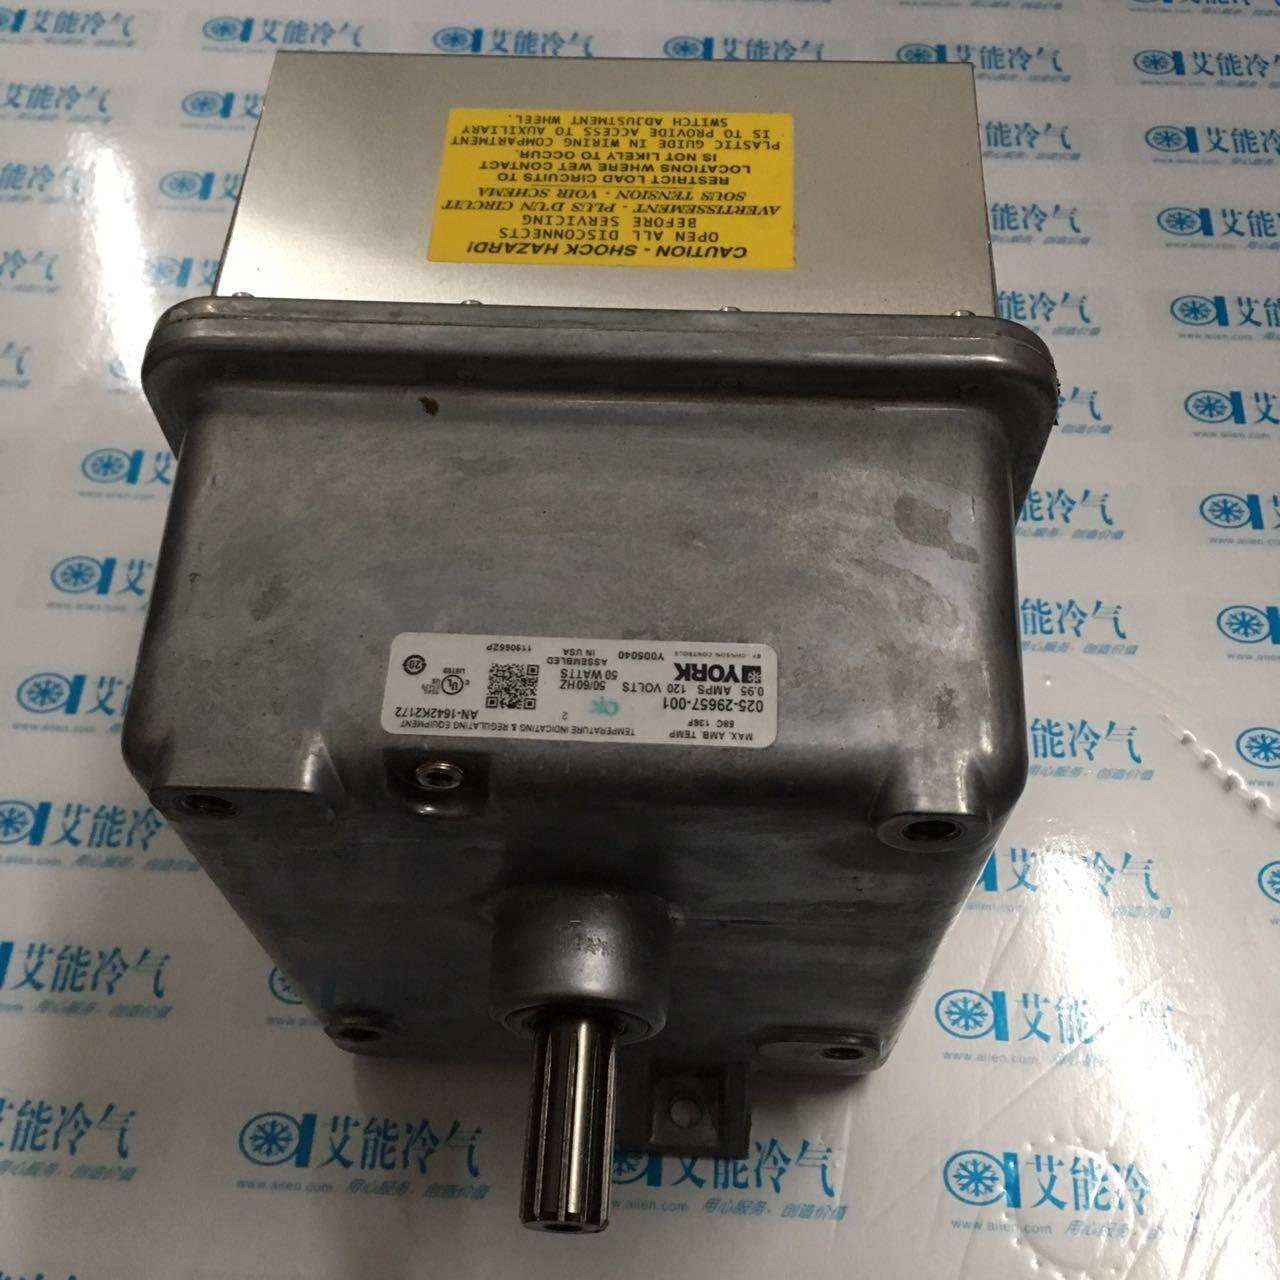 Buy cheap YORK CHILLER ACTUATOR 371 49340 105 ACTUATOR 025-29657-001 from wholesalers